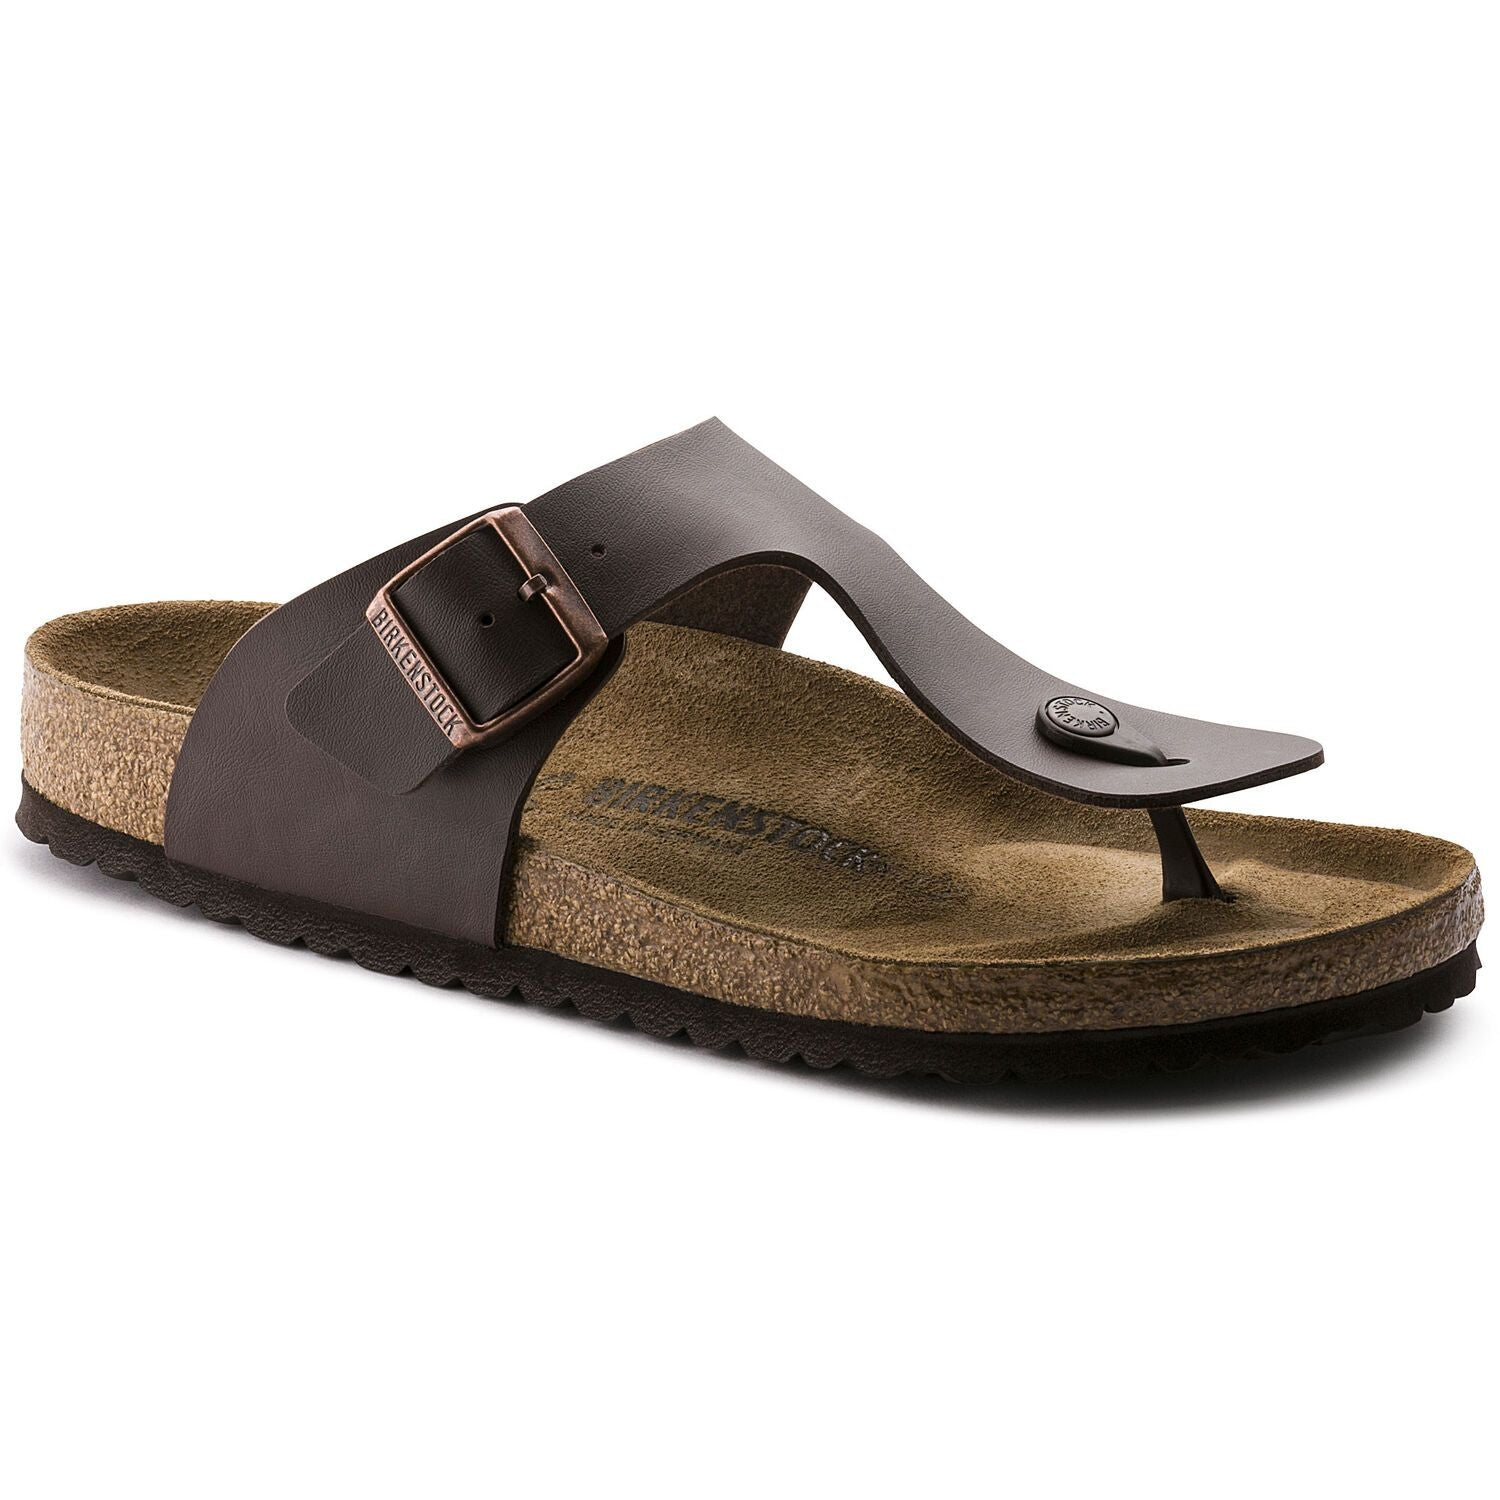 RAMSES BIRKO-FLOR - DARK BROWN